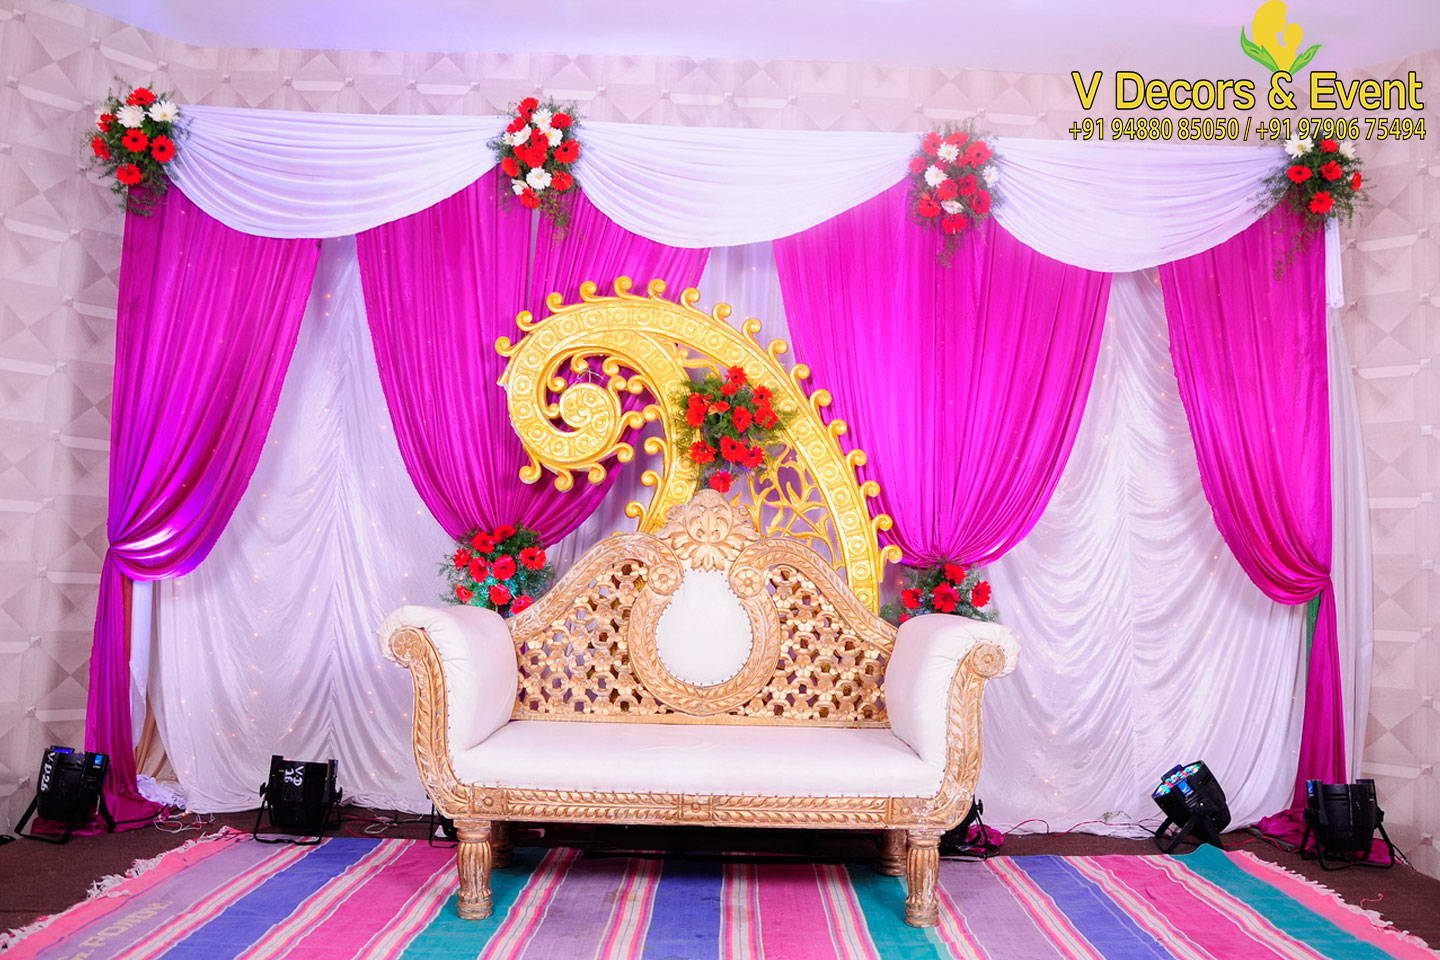 V Decors and Events - Wedding Decorations Pondicherry,Event ...